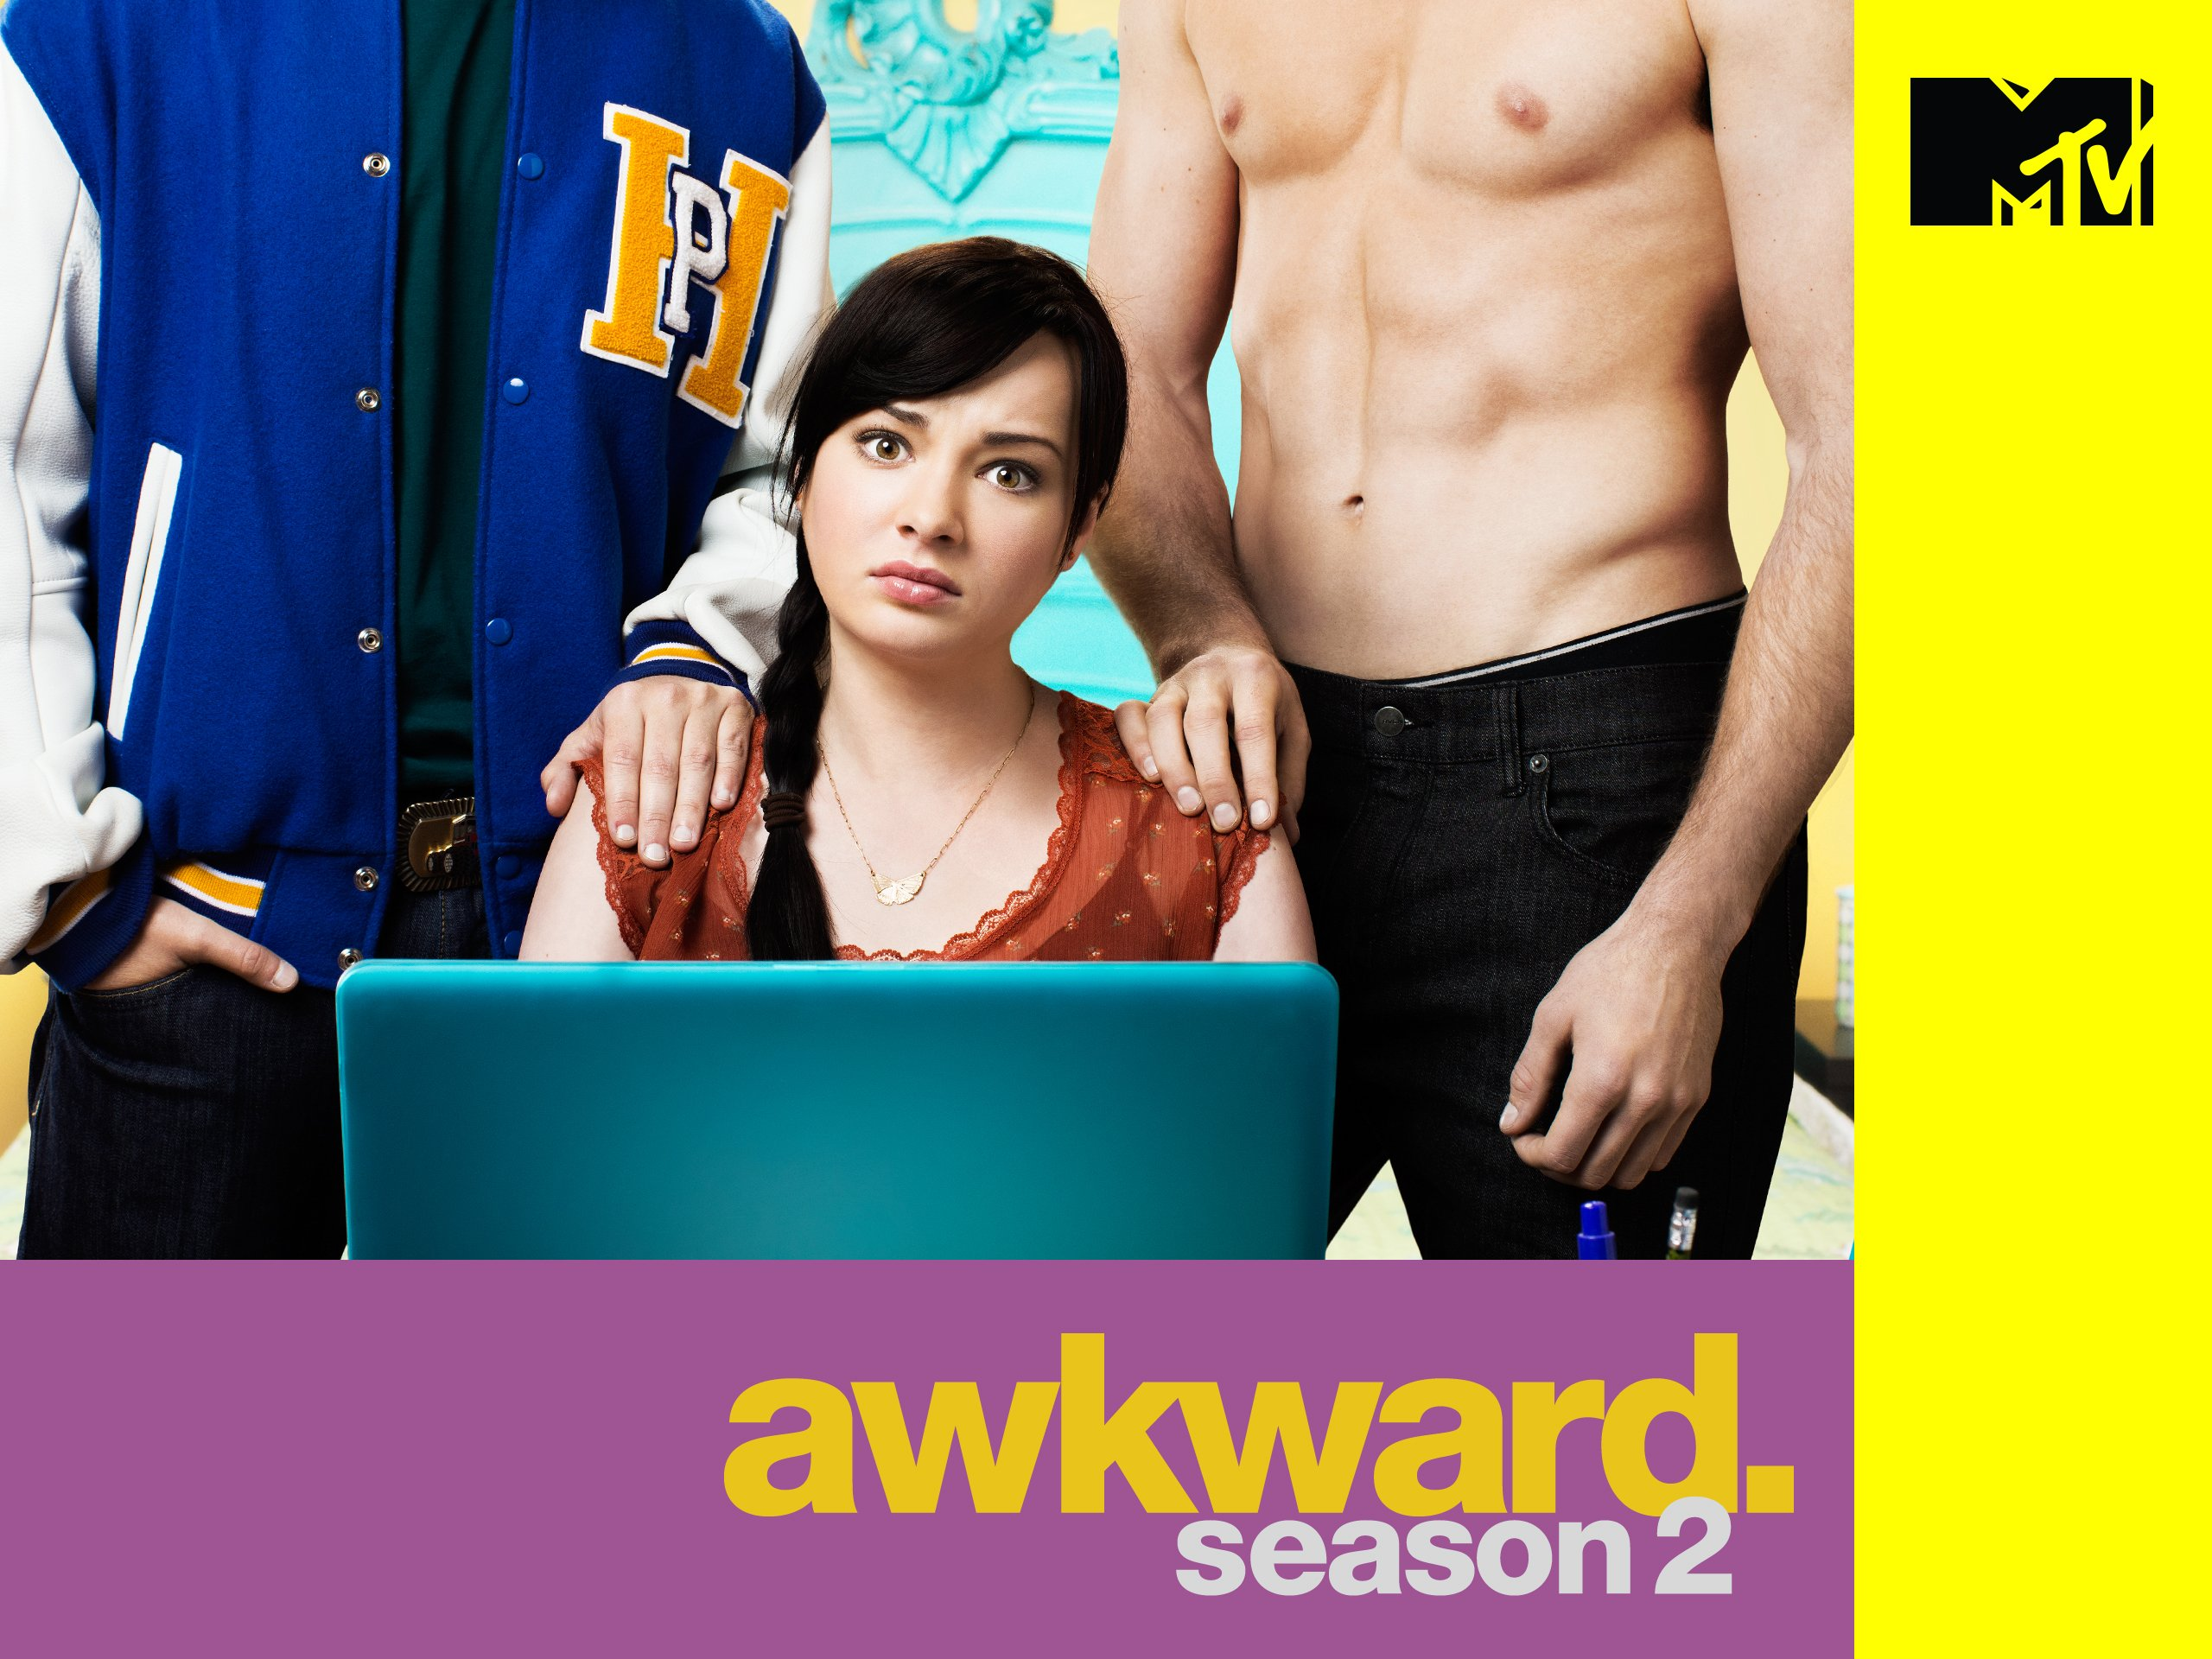 Is ashley and beau from awkward dating card